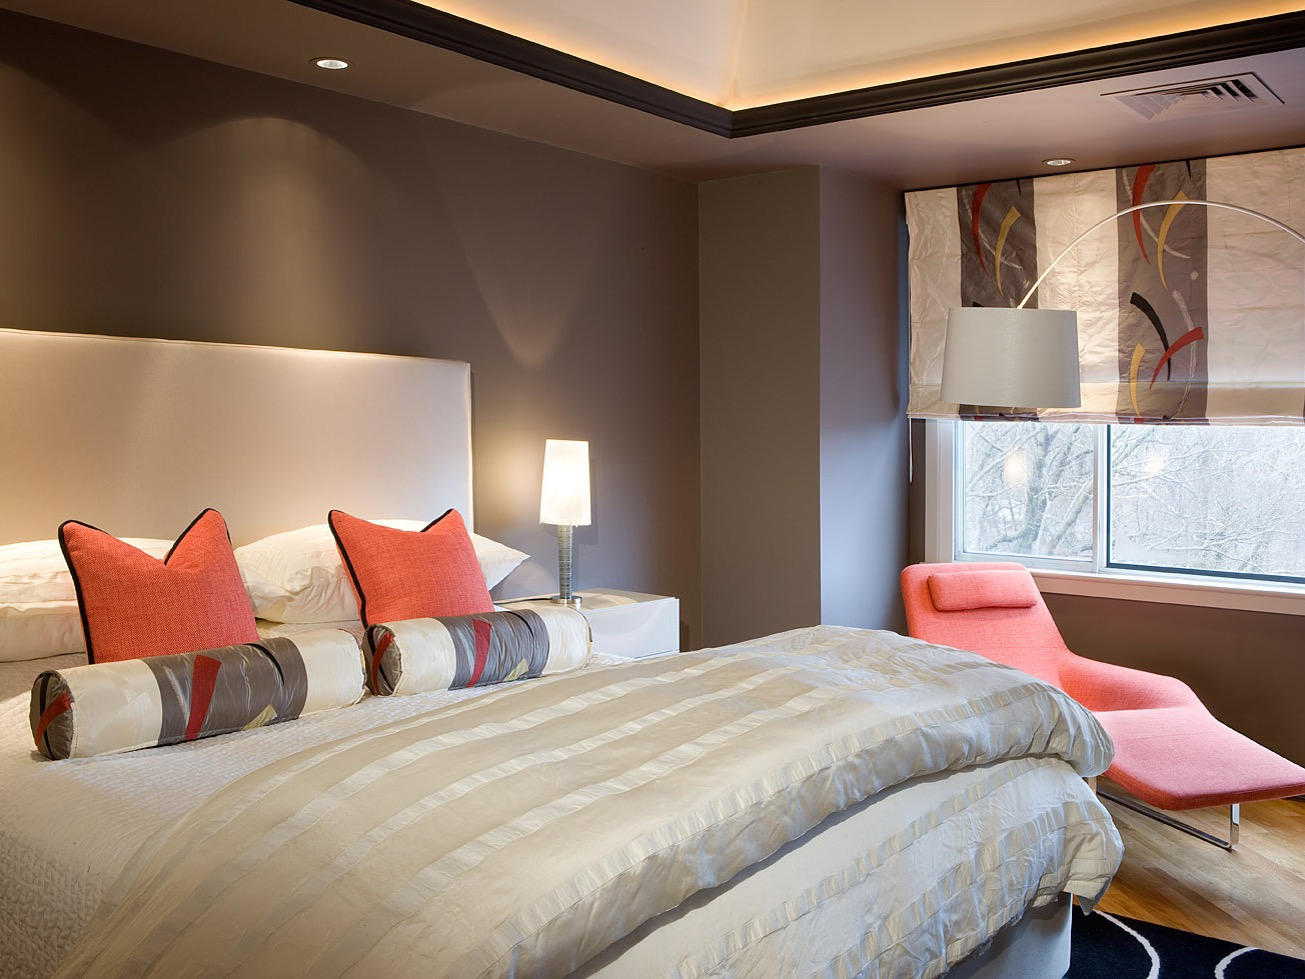 Modern Bedroom With Upholstered Headboard And Neutral Bedding (Image 14 of 23)